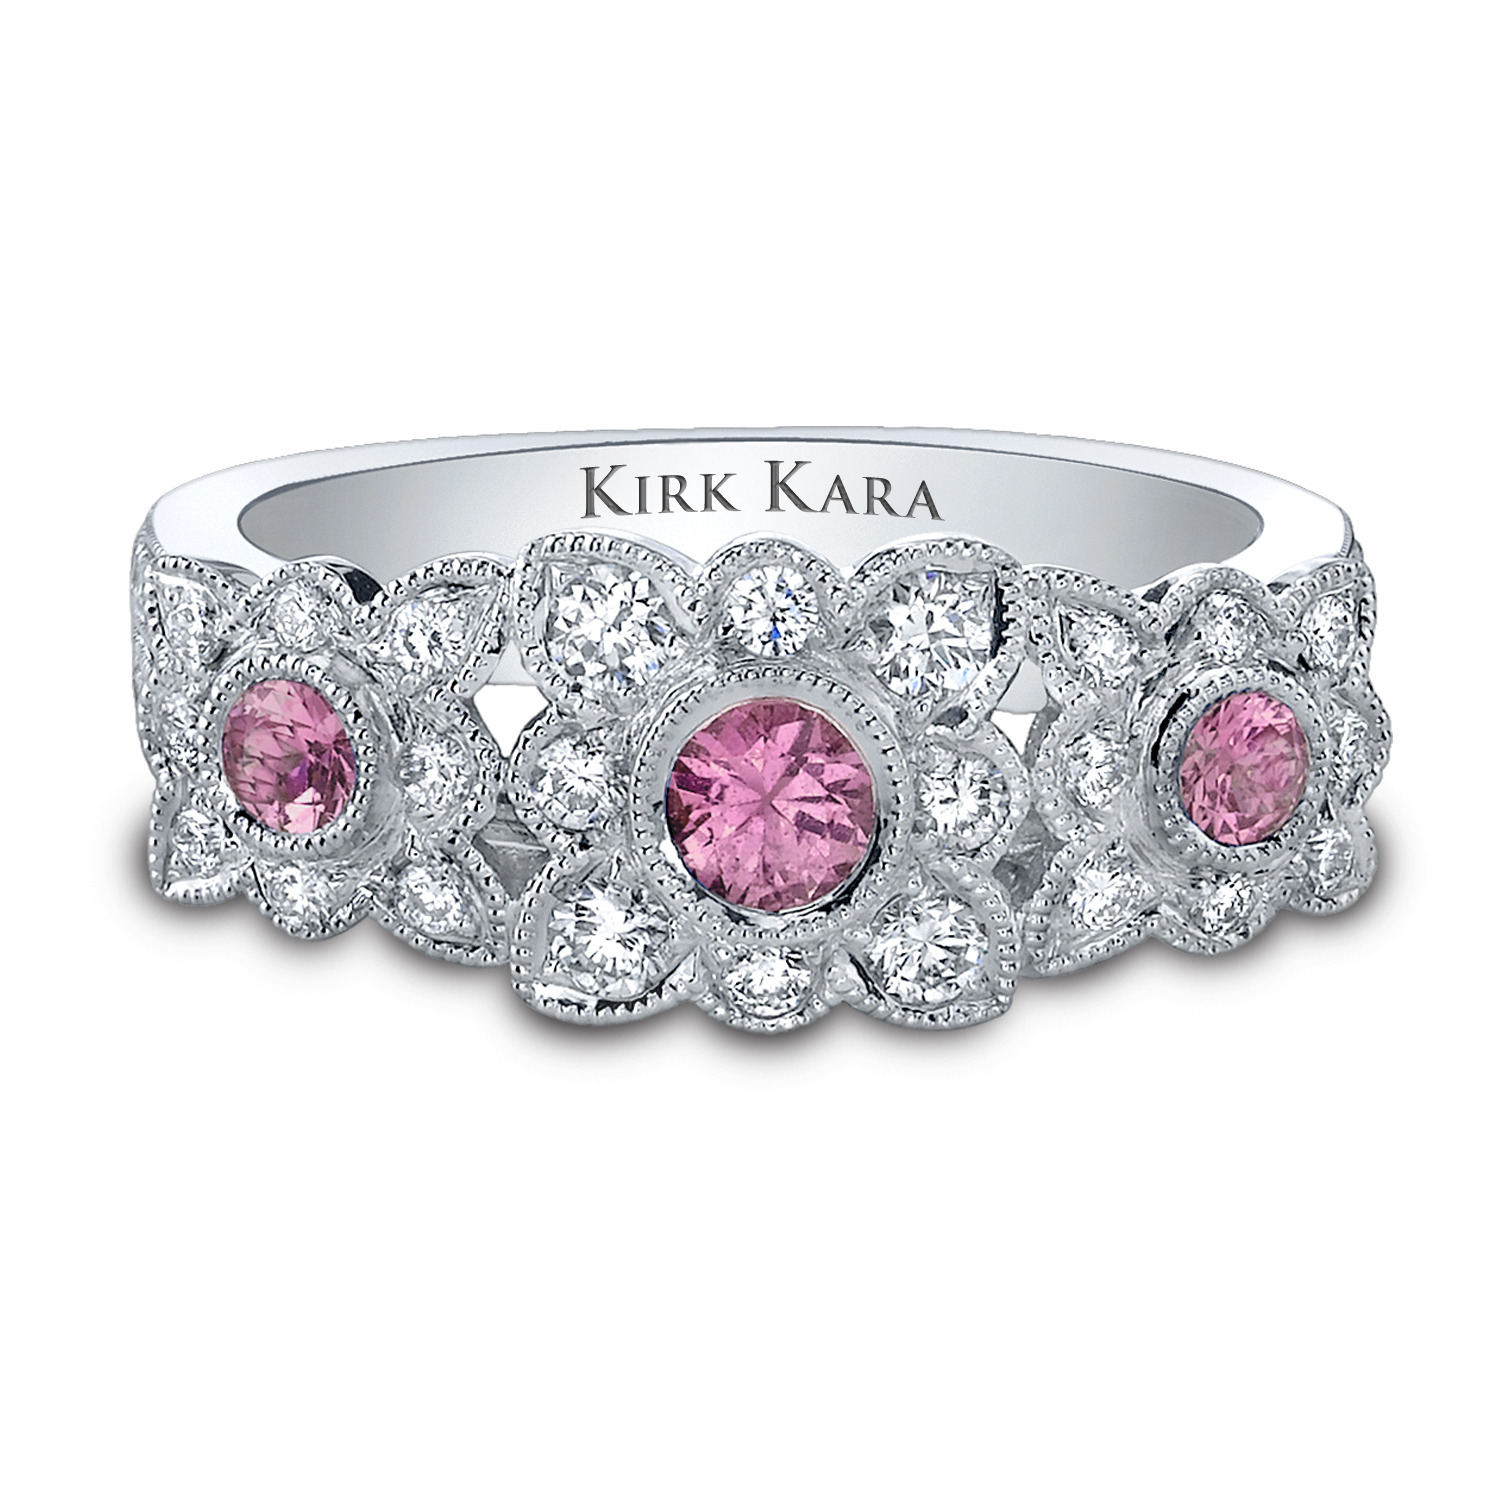 Kirk Kara Platinum Engagement Ring